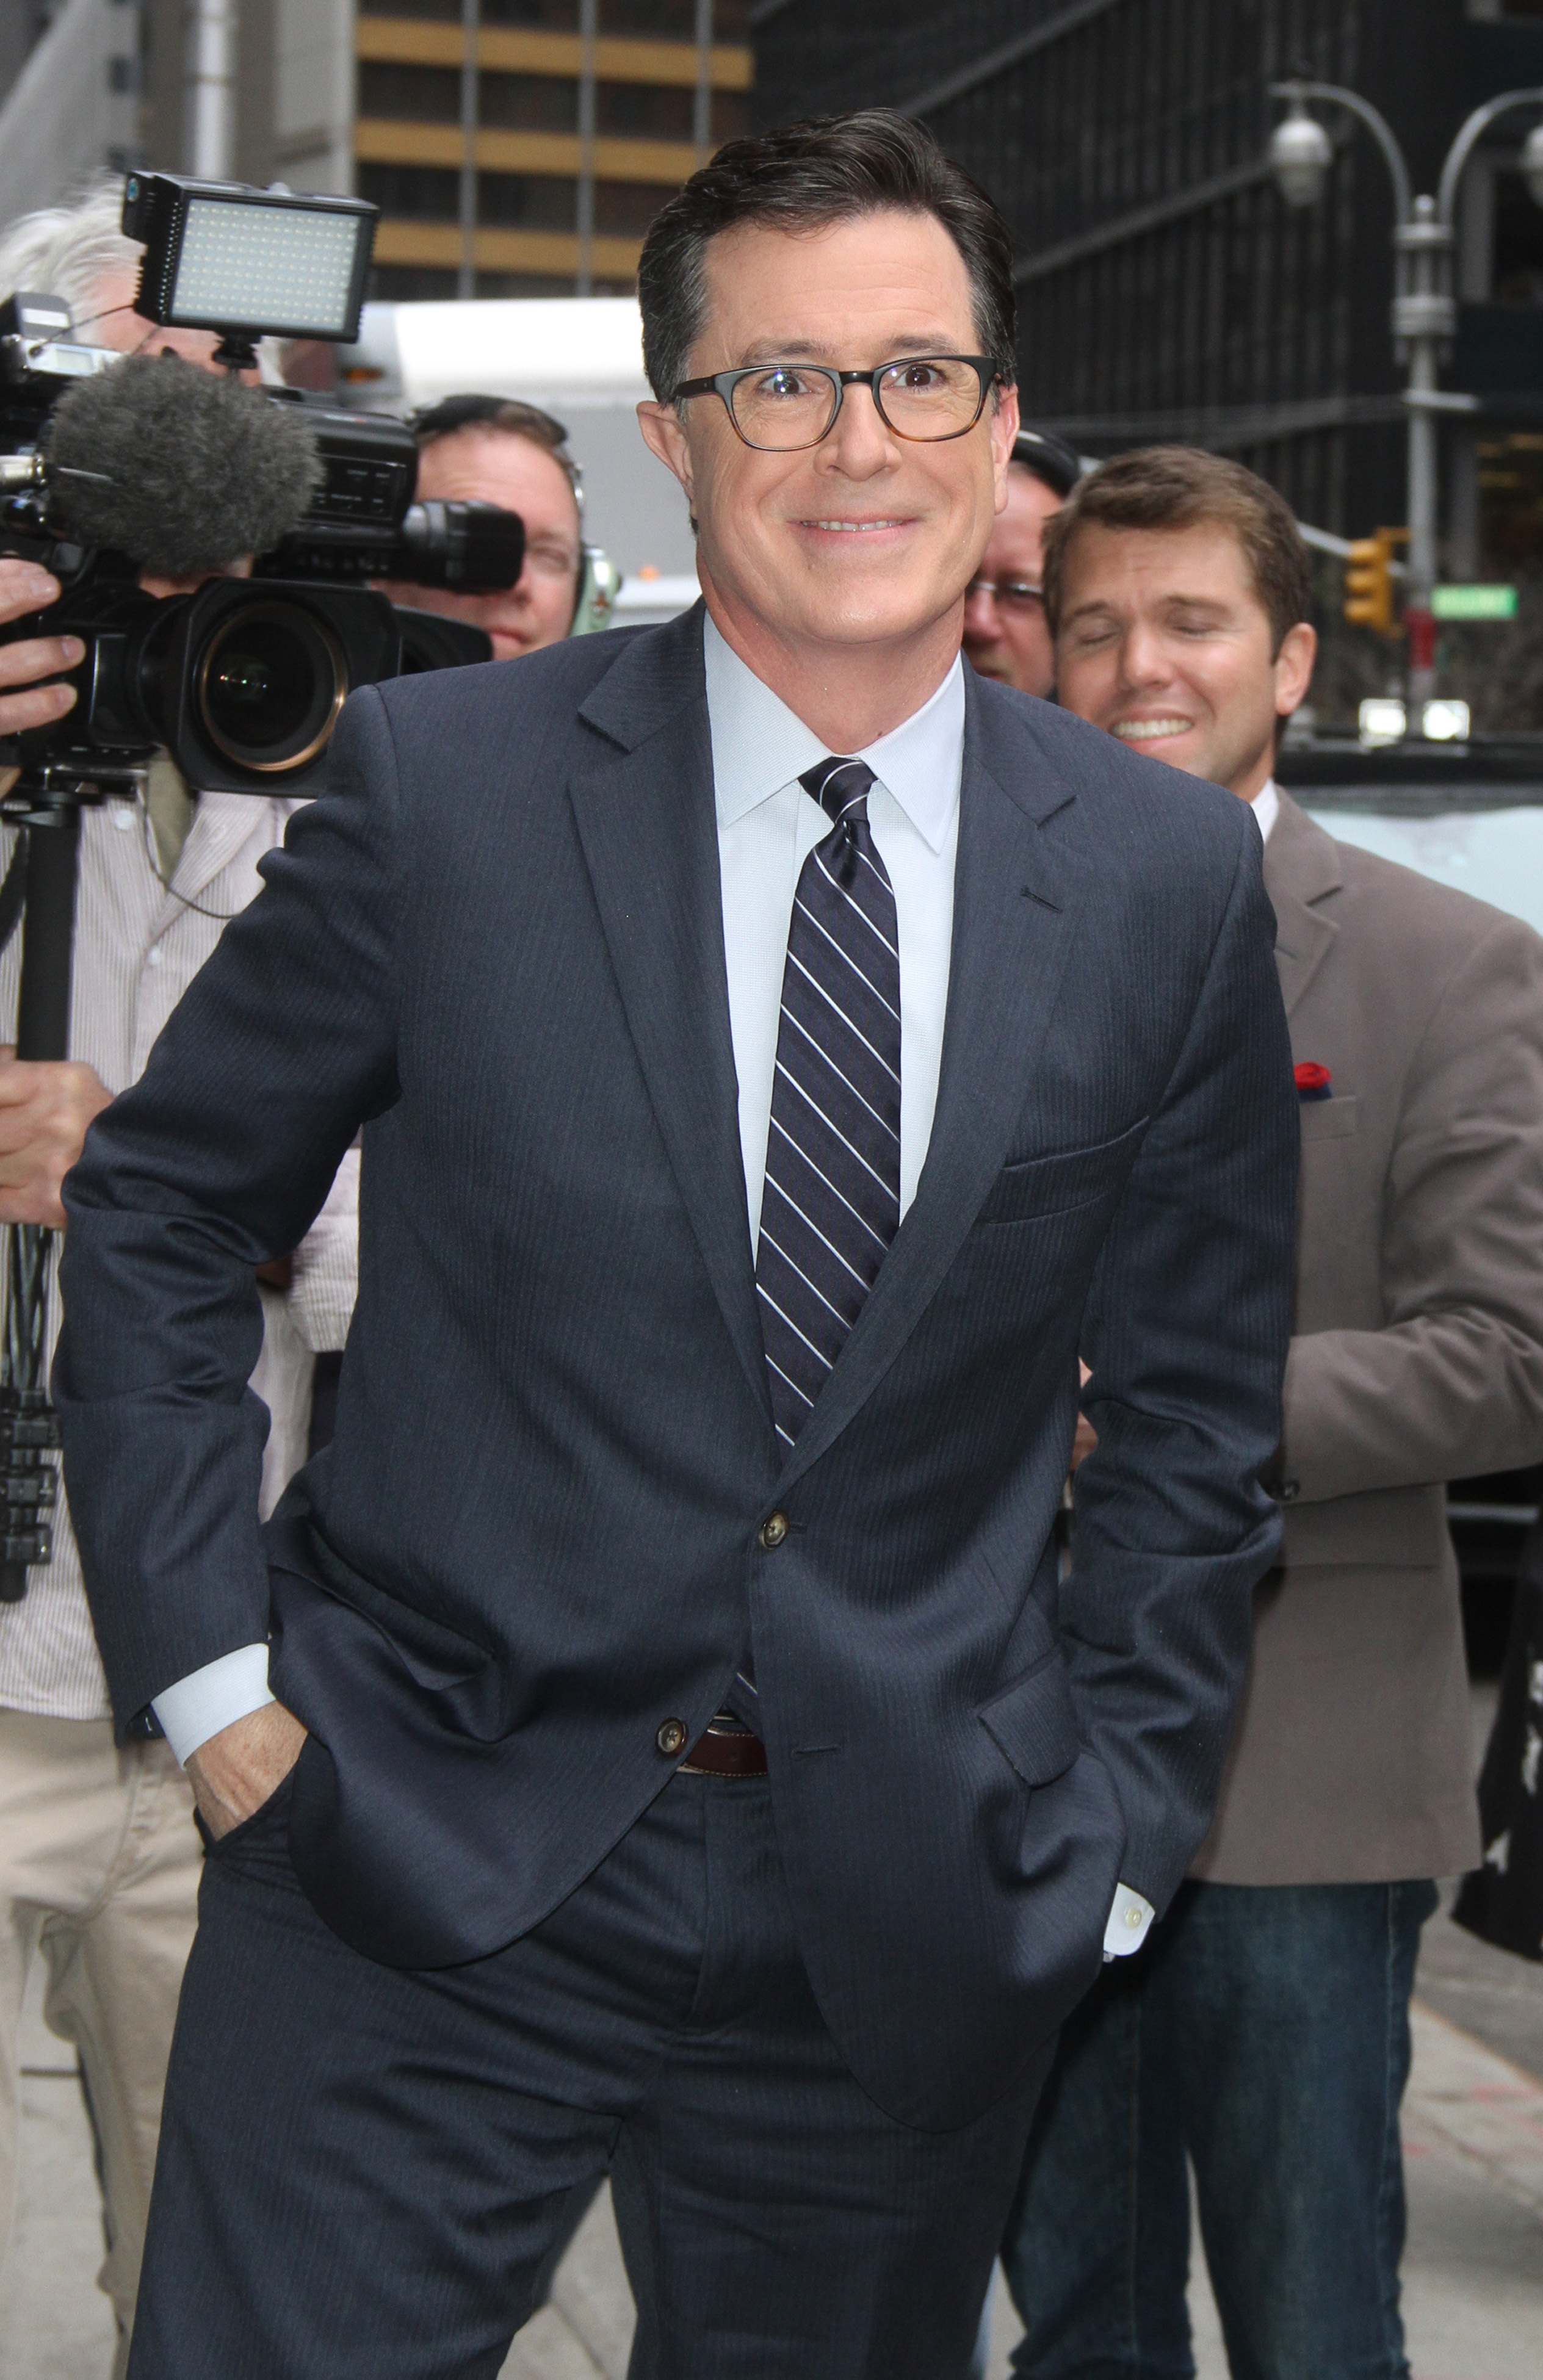 Stephen Colbert gets kicked off RNC stage